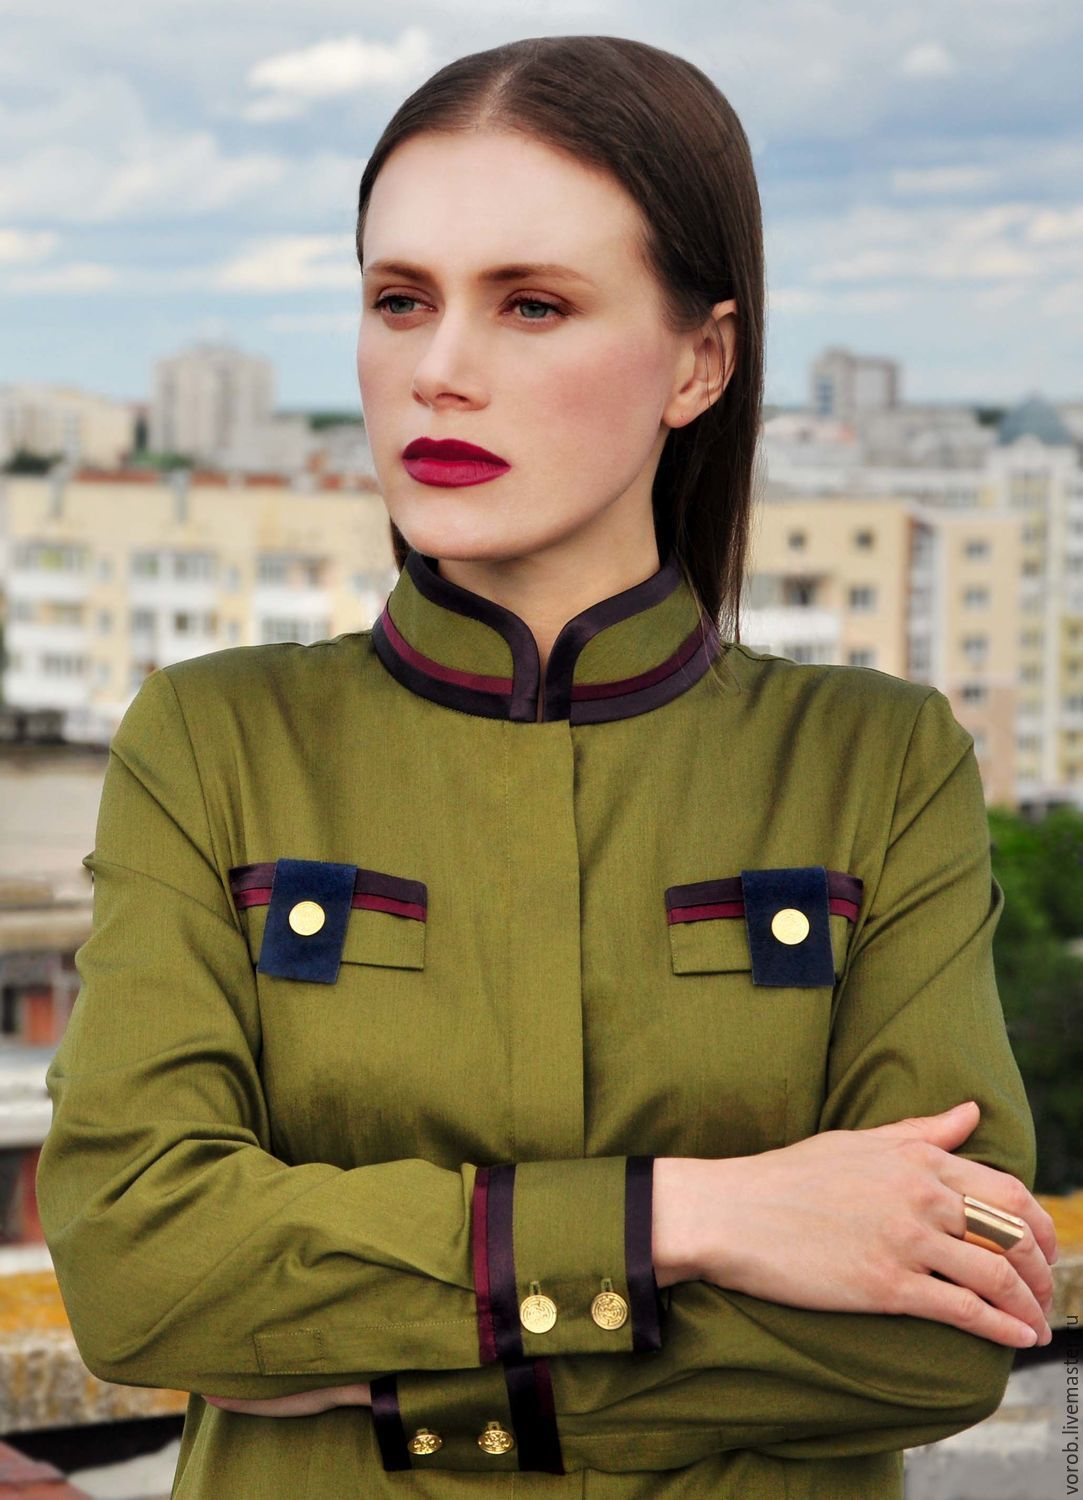 Women's shirt. Cotton shirt. Olive collor, Blouses, Moscow,  Фото №1